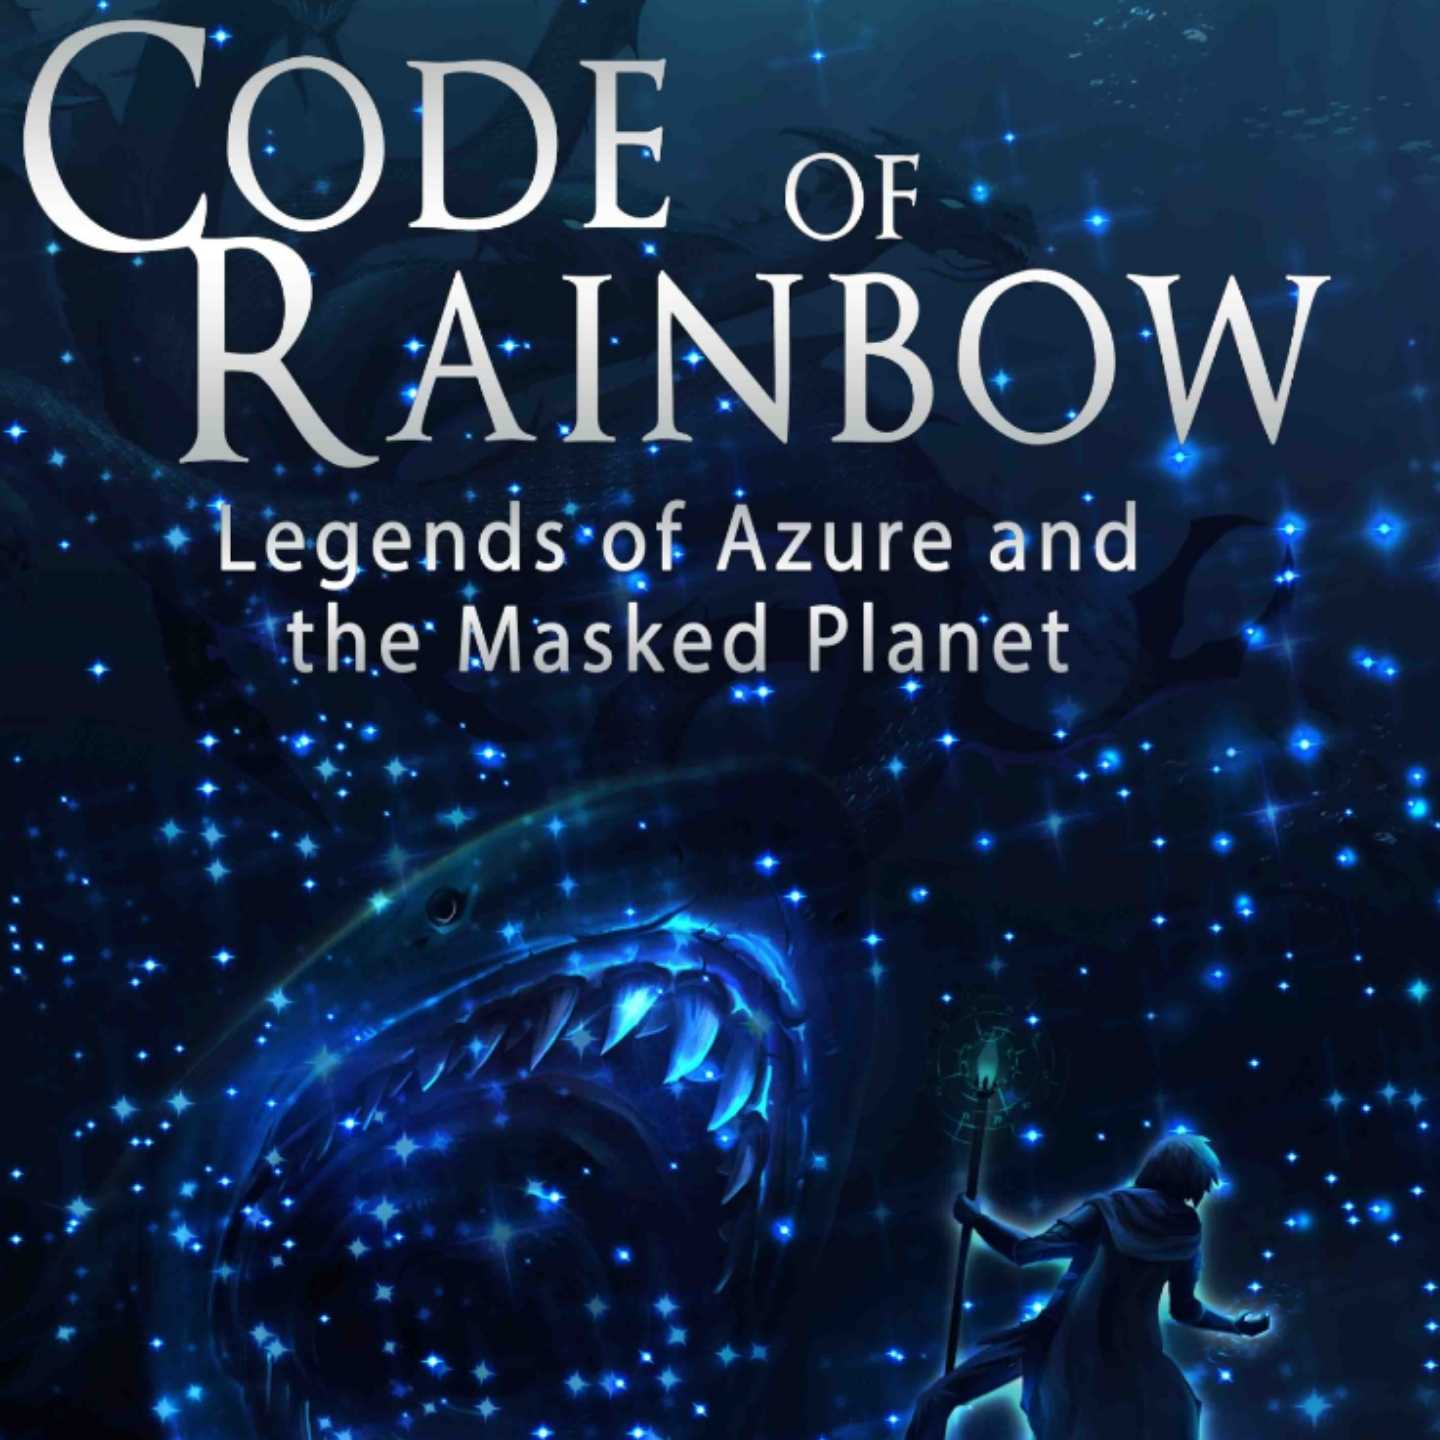 Code of Rainbow, 360 MAGAZINE